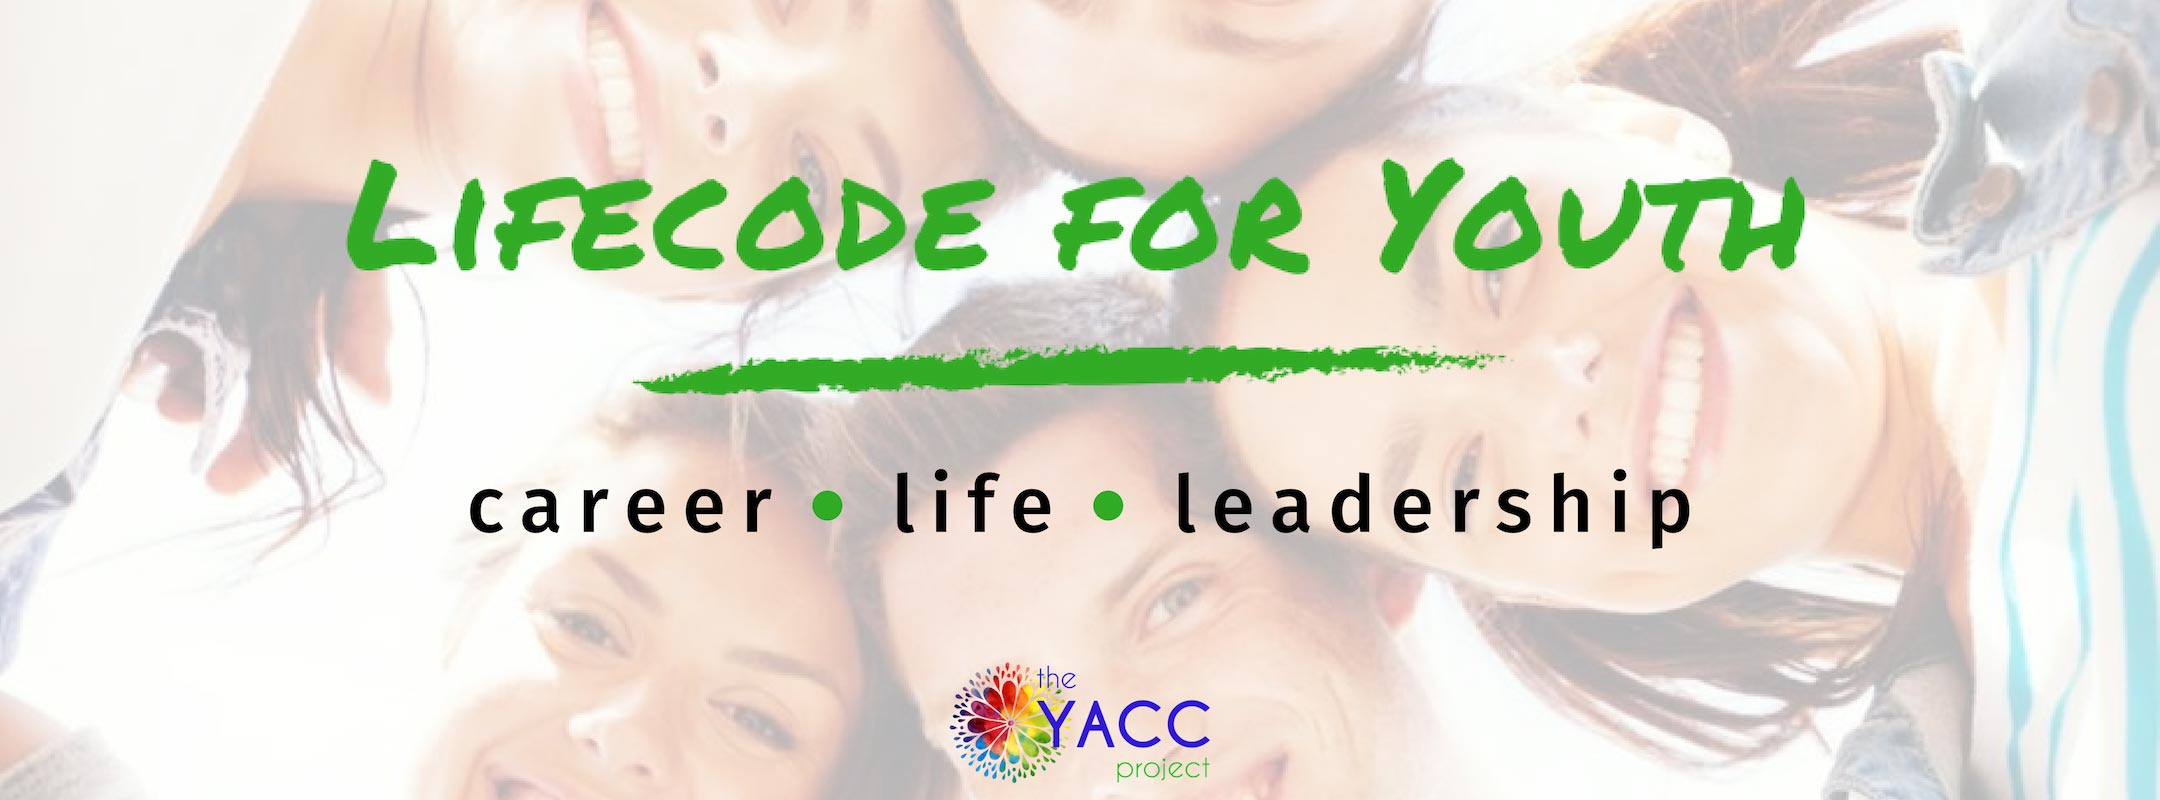 Lifecode for Youth banner